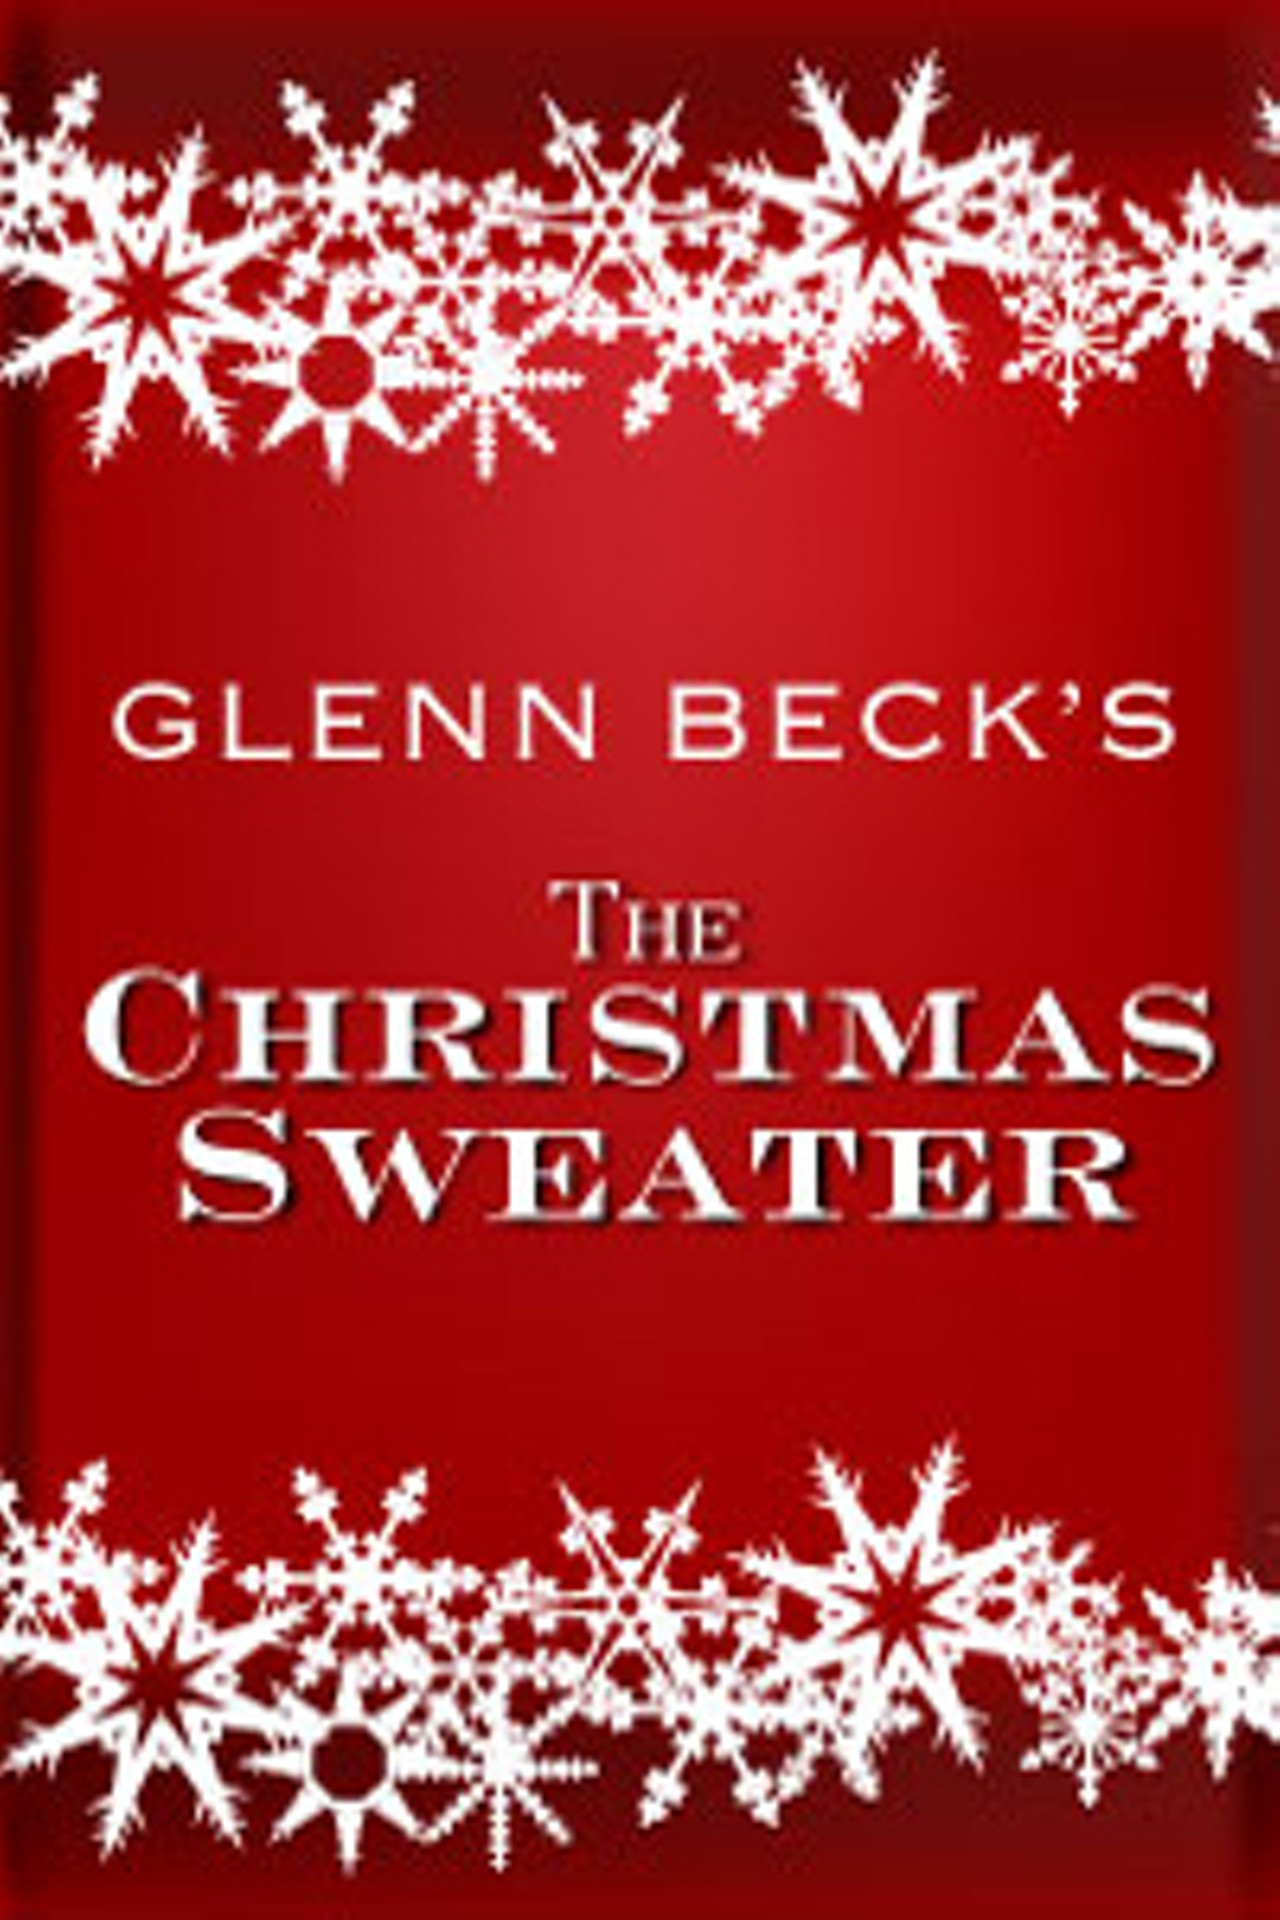 Christmas Sweater By Glenn Beck.Glenn Beck S Christmas Sweater A Return To Redemption Live